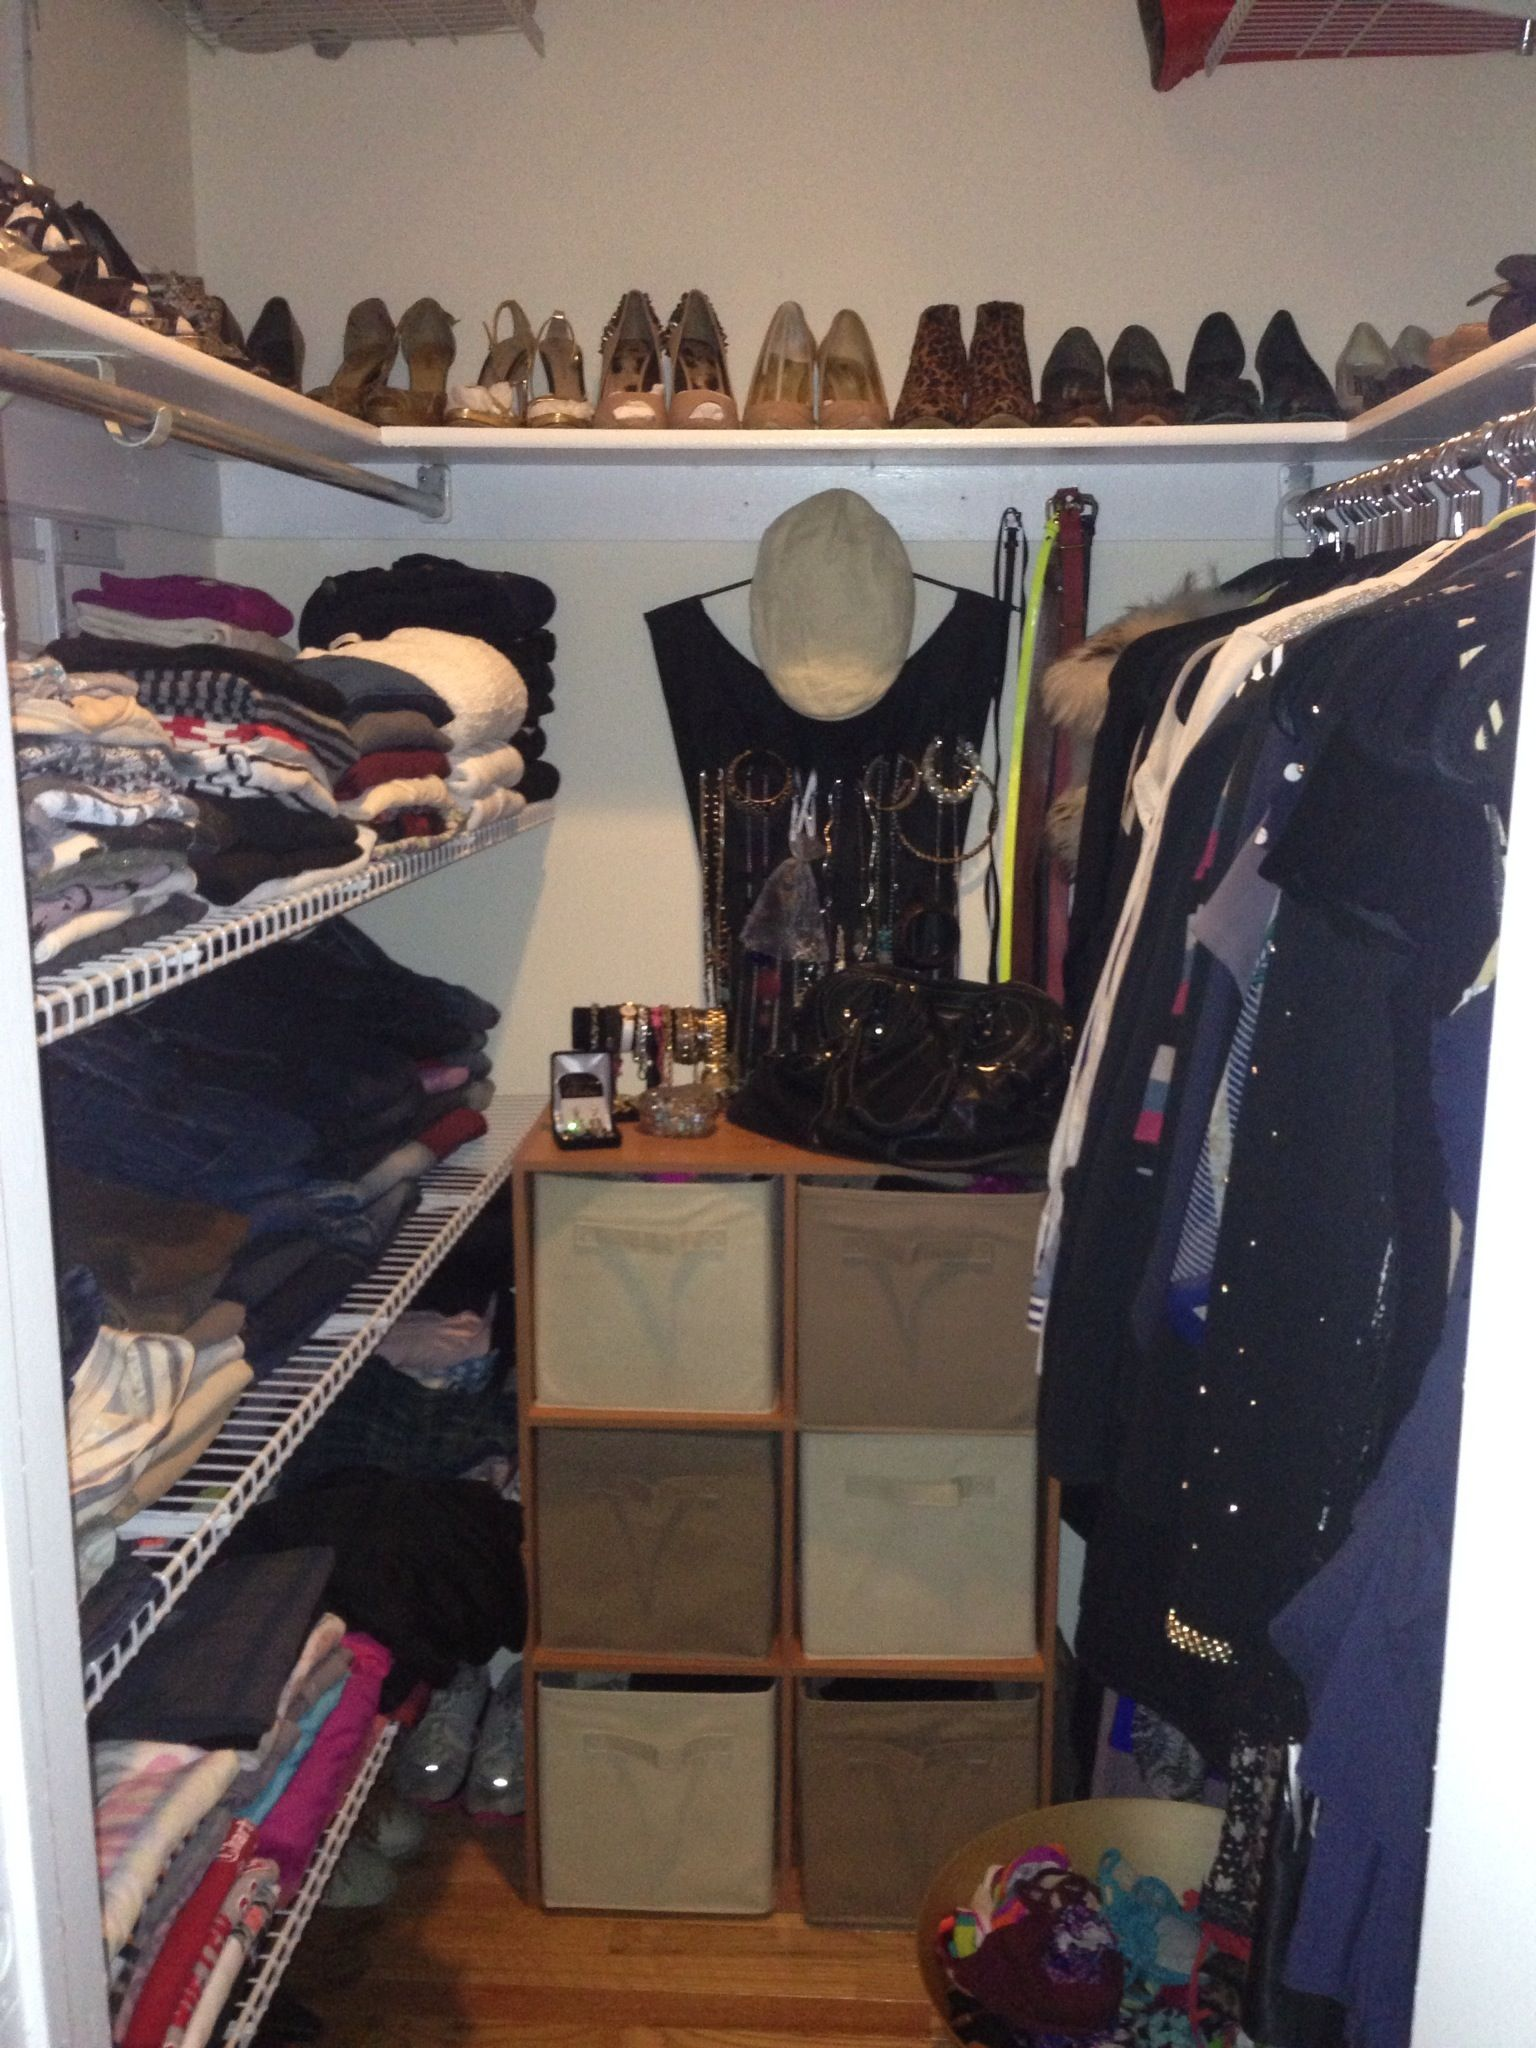 I Worked With A Client In Santa Monica And When She Moved To Philly, She  Emailed Me This Photo! So Proud! Beautifully Organized Closet!